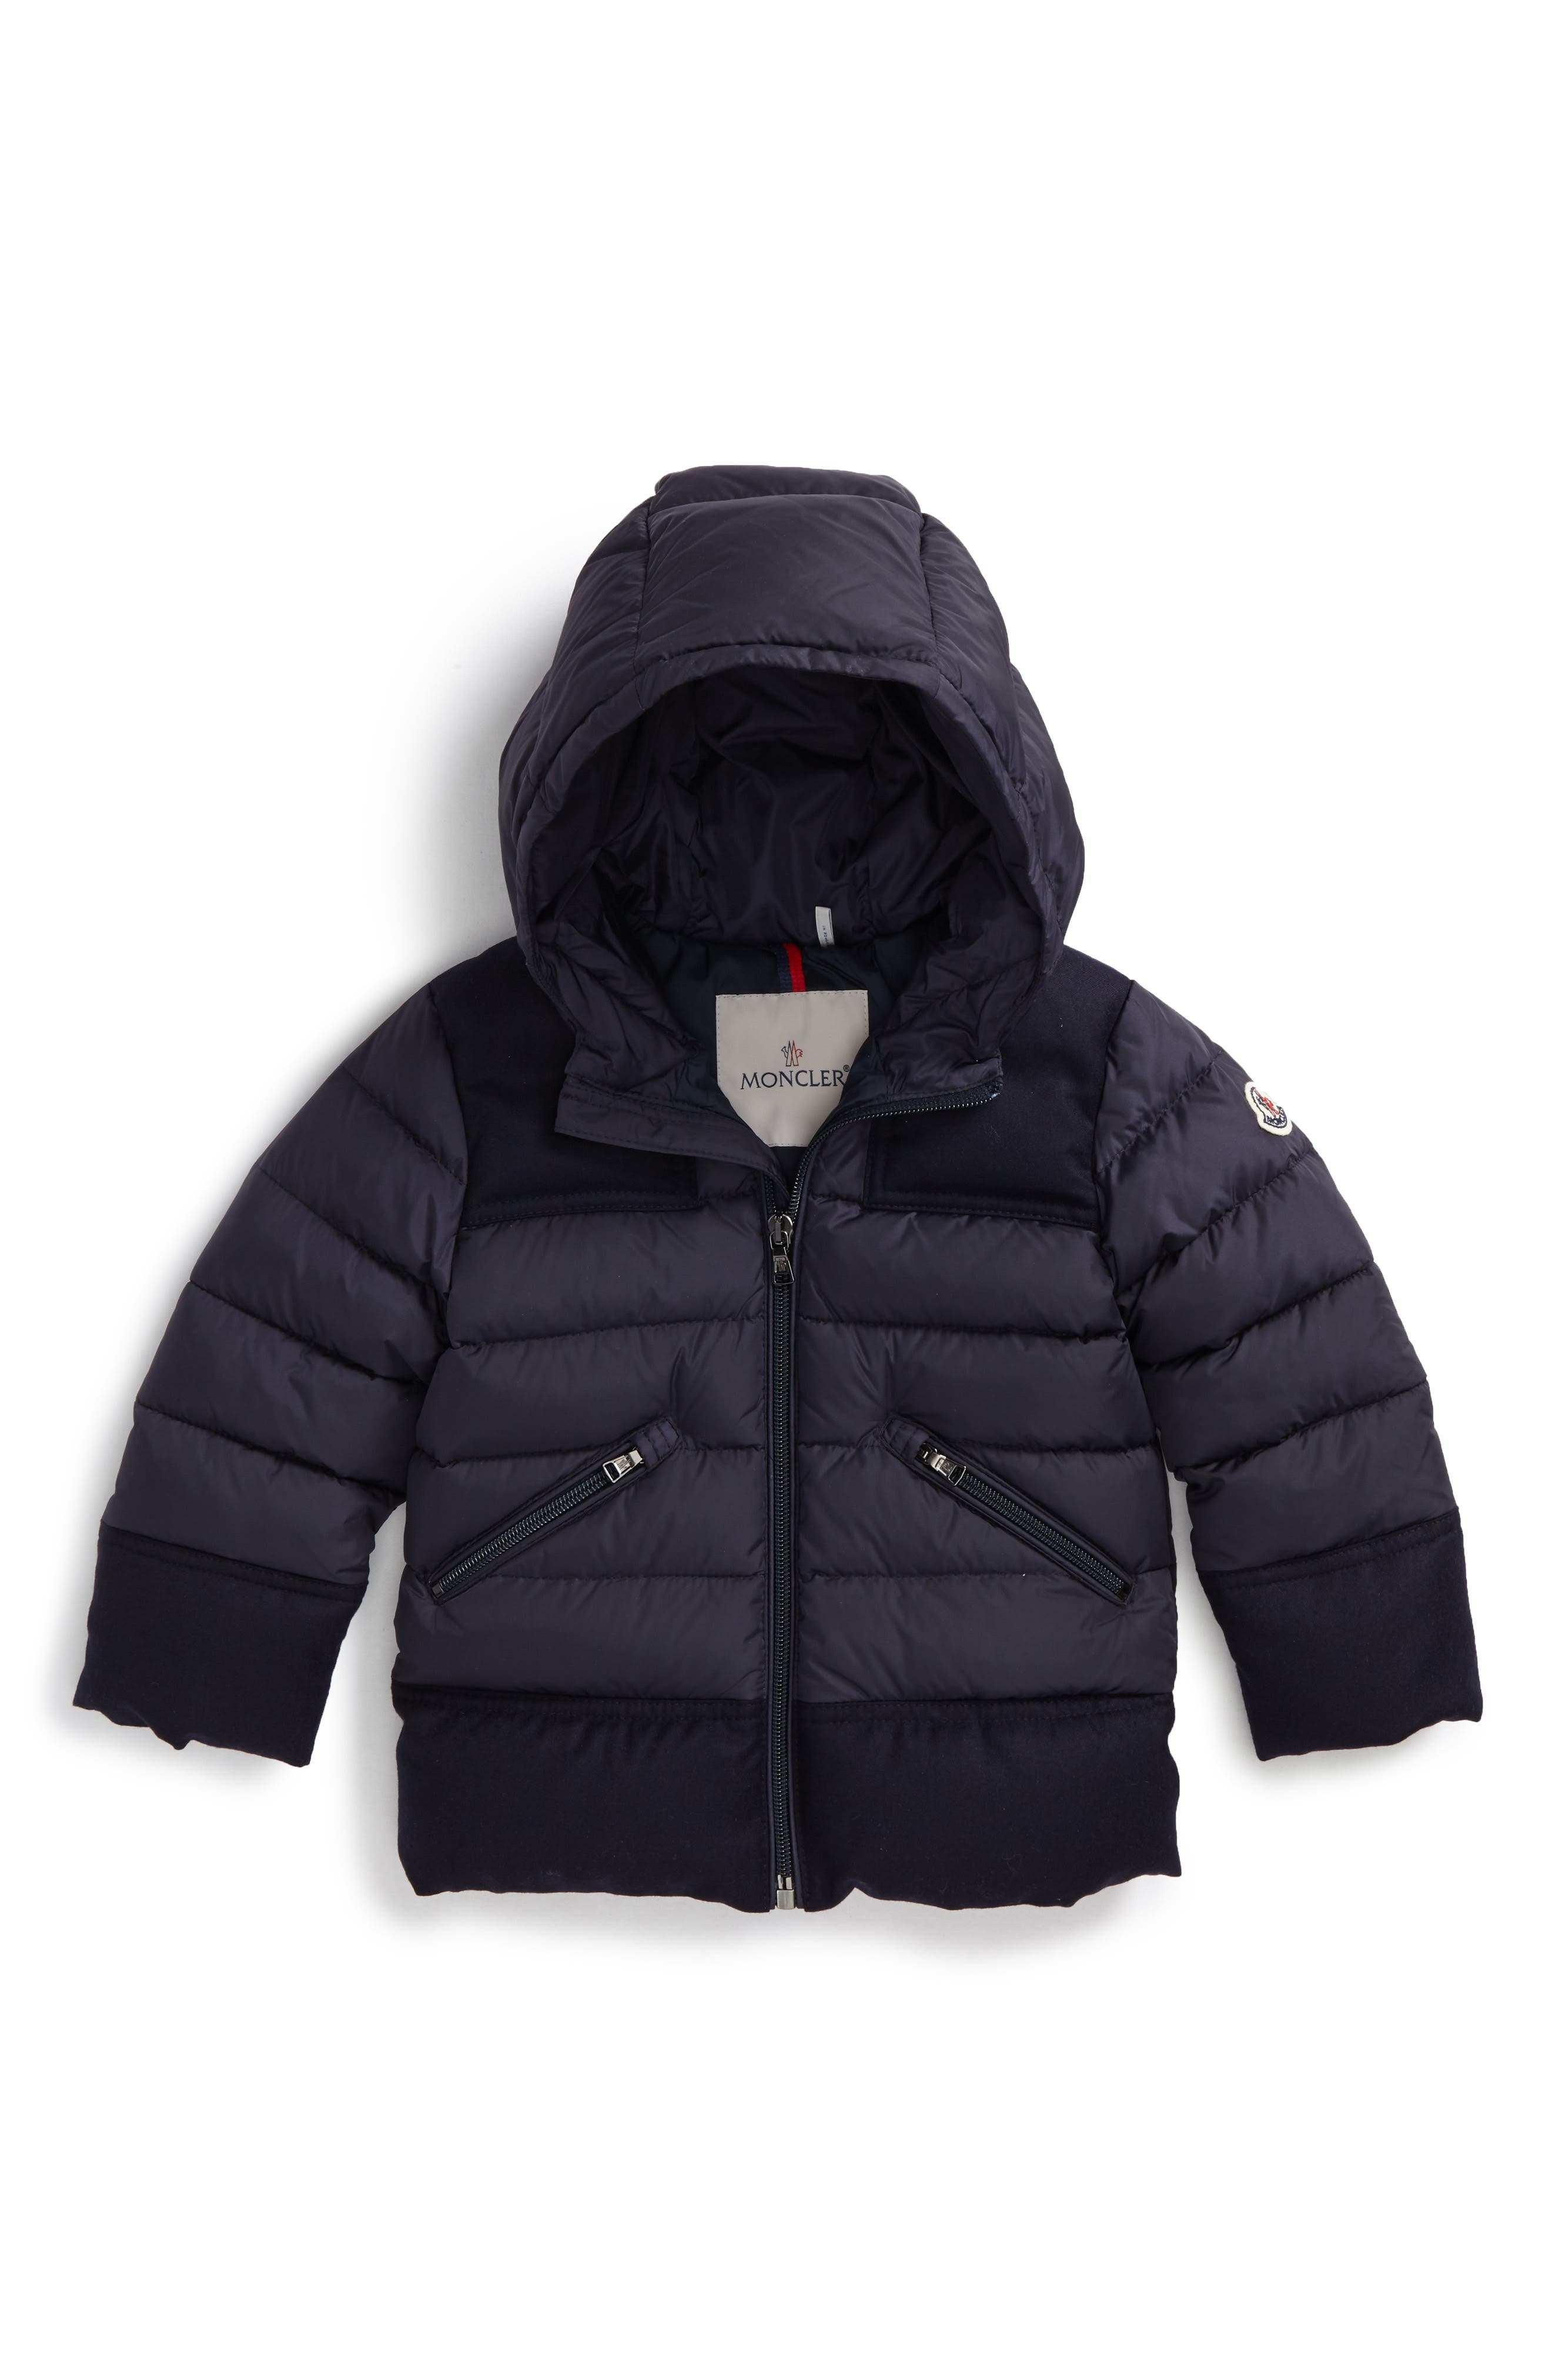 Alternate Image 1 Selected - Moncler Hector Hooded Down Jacket (Baby Boys & Toddler Boys)